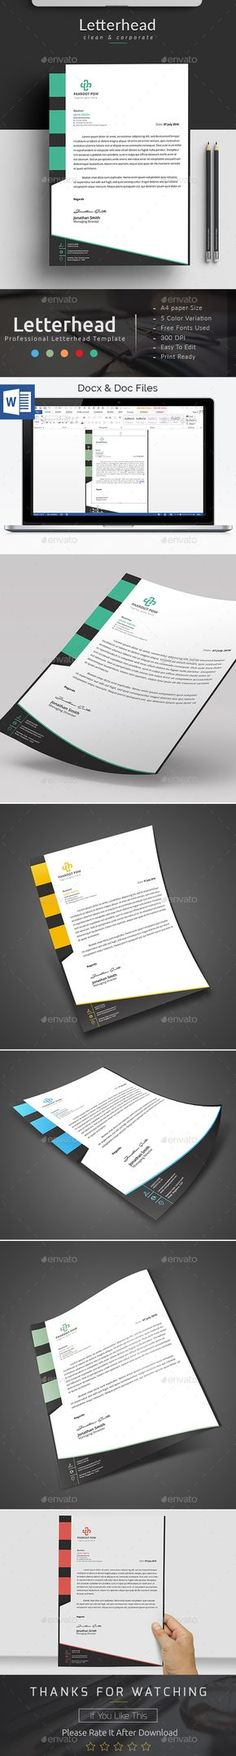 Corporate Letterhead Letterhead design, Stationery printing and - free word letterhead template